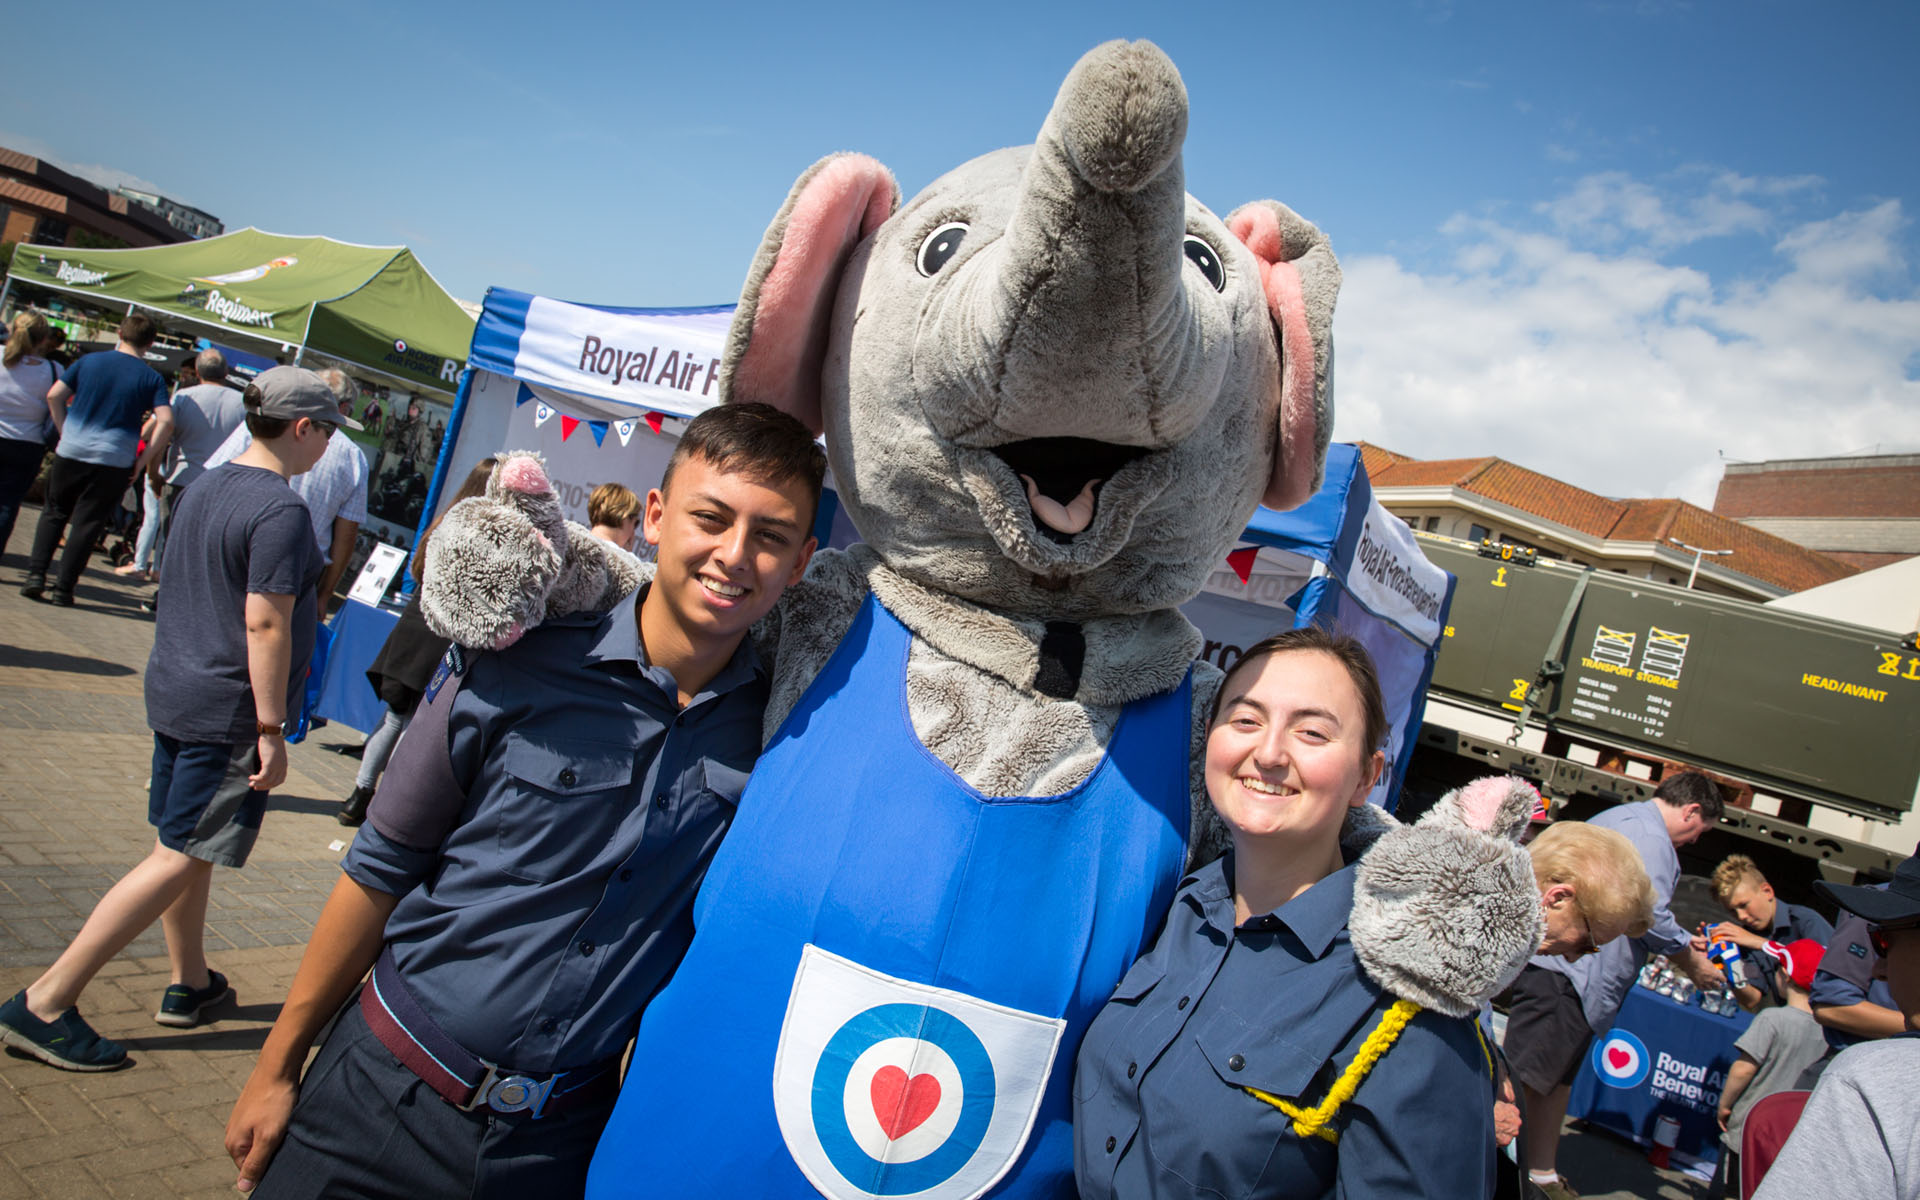 Cadets smile with the RAF elephant at the Air Show